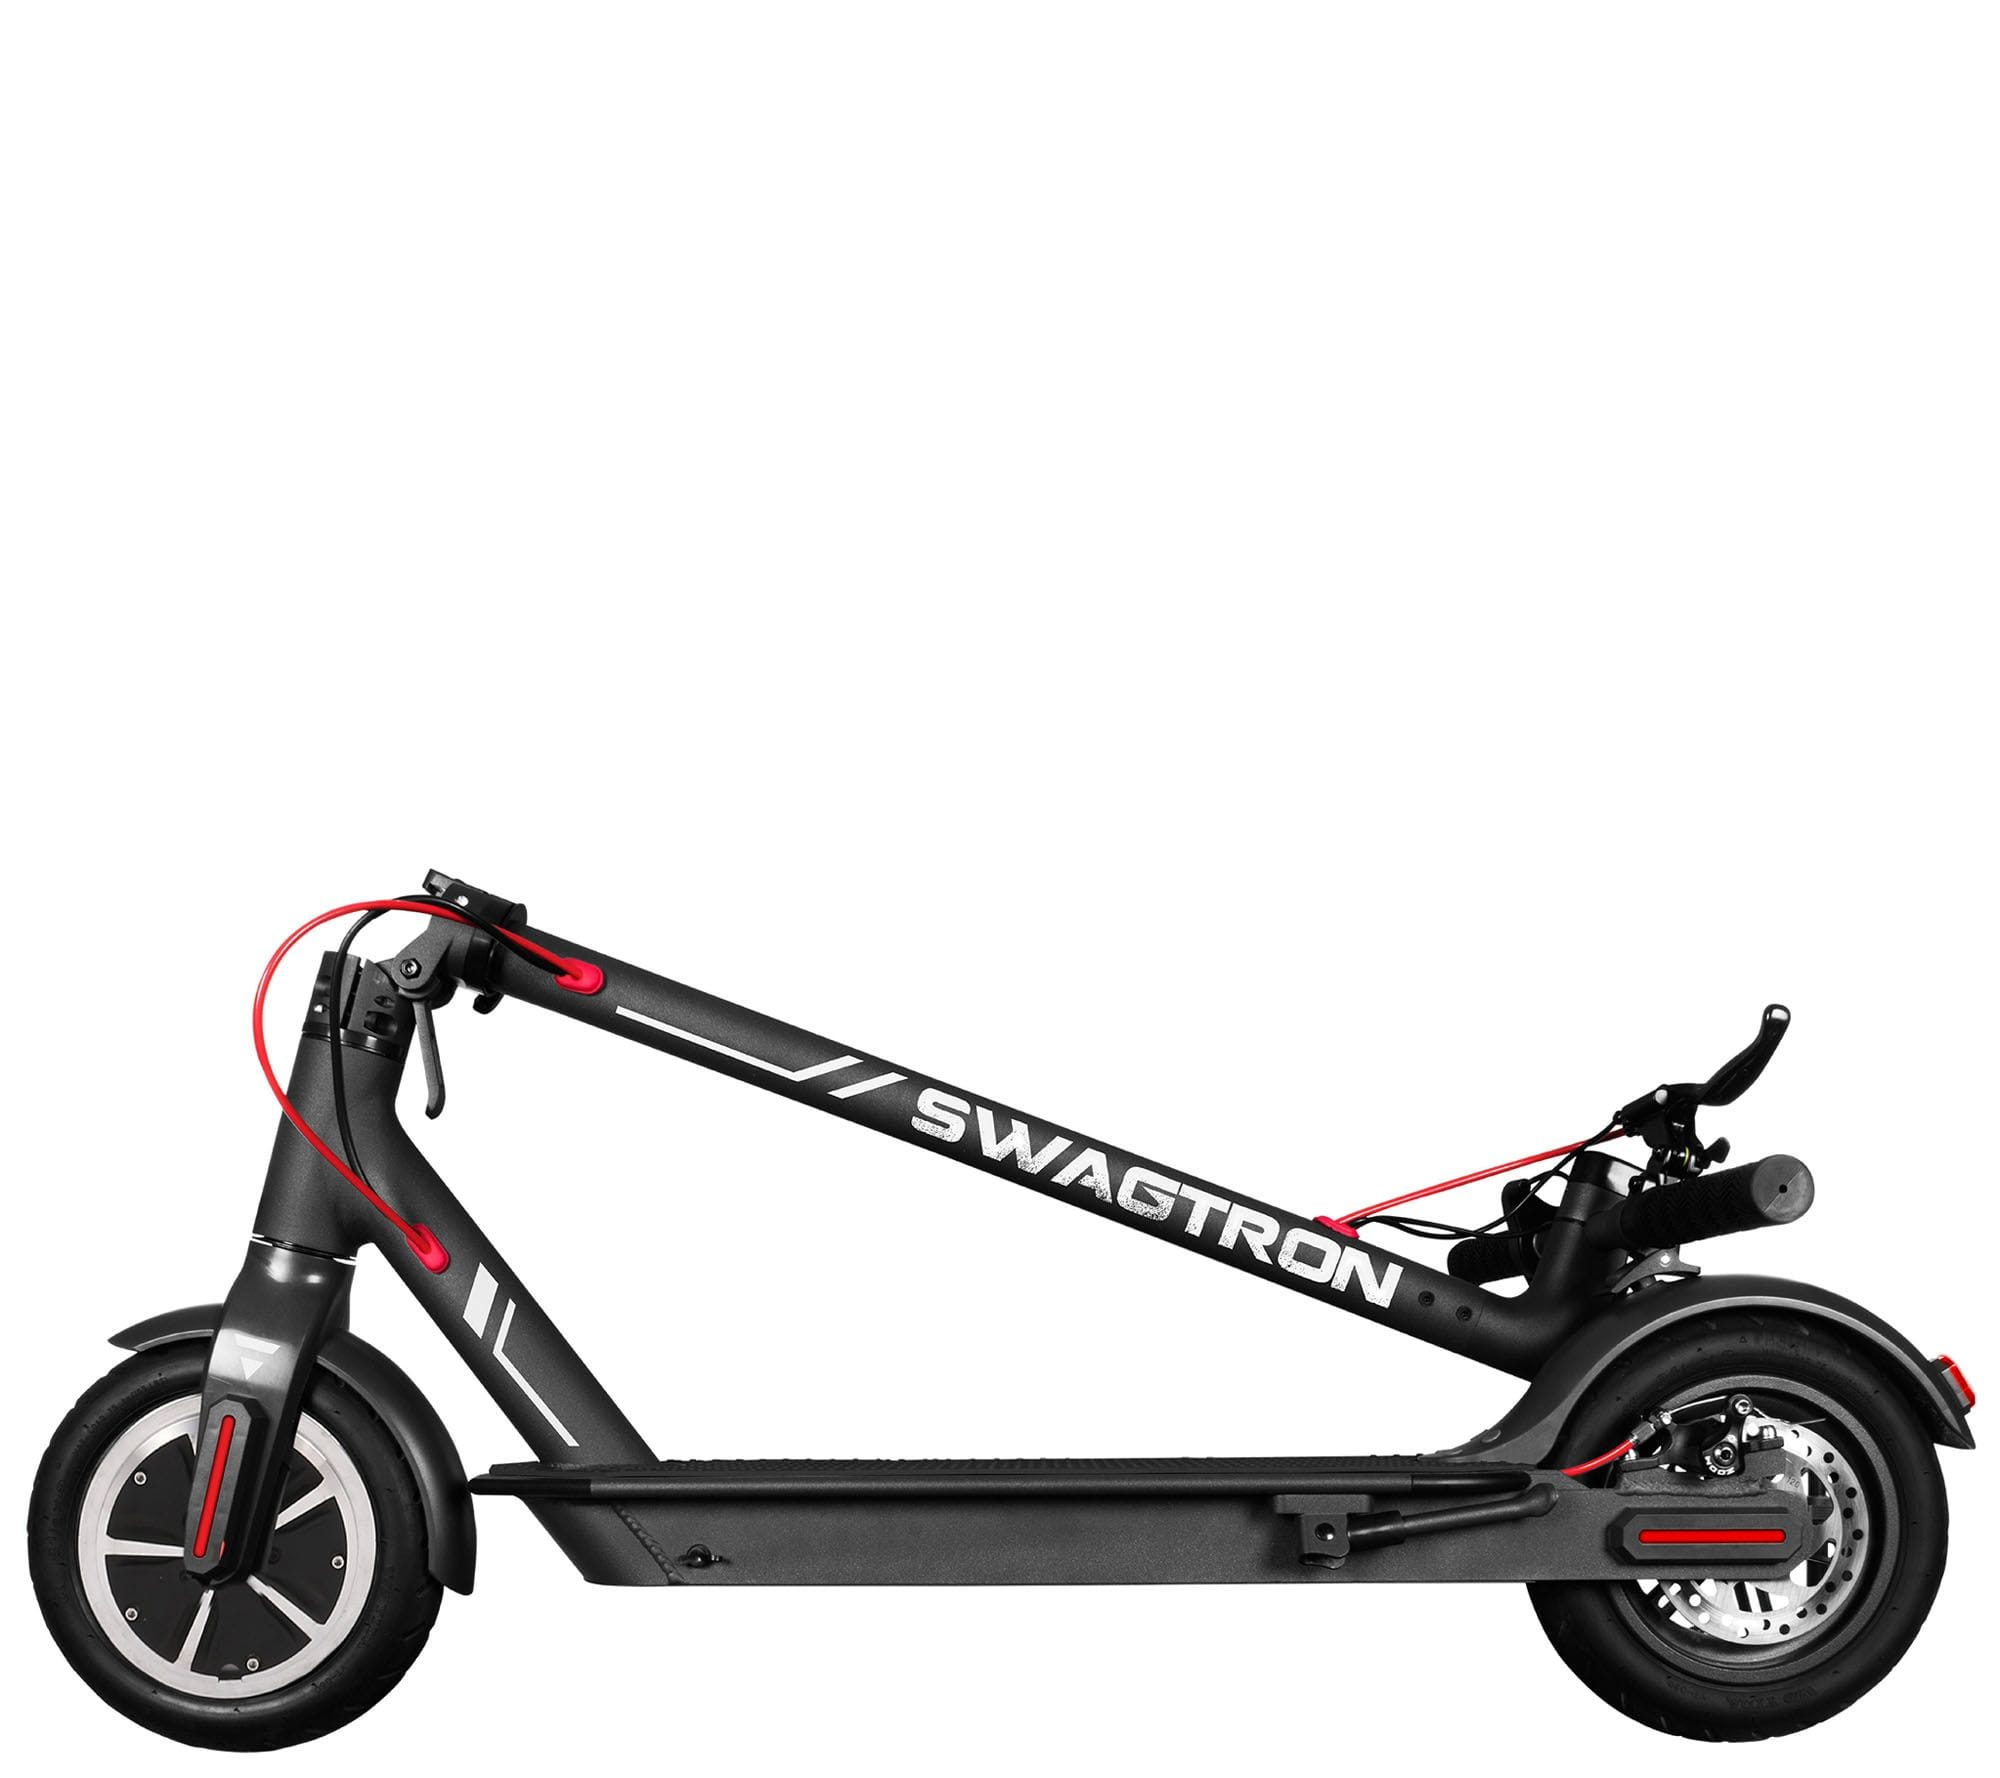 Swagtron Swagger 5 Electric Scooter Review 2019 - Electric Travel